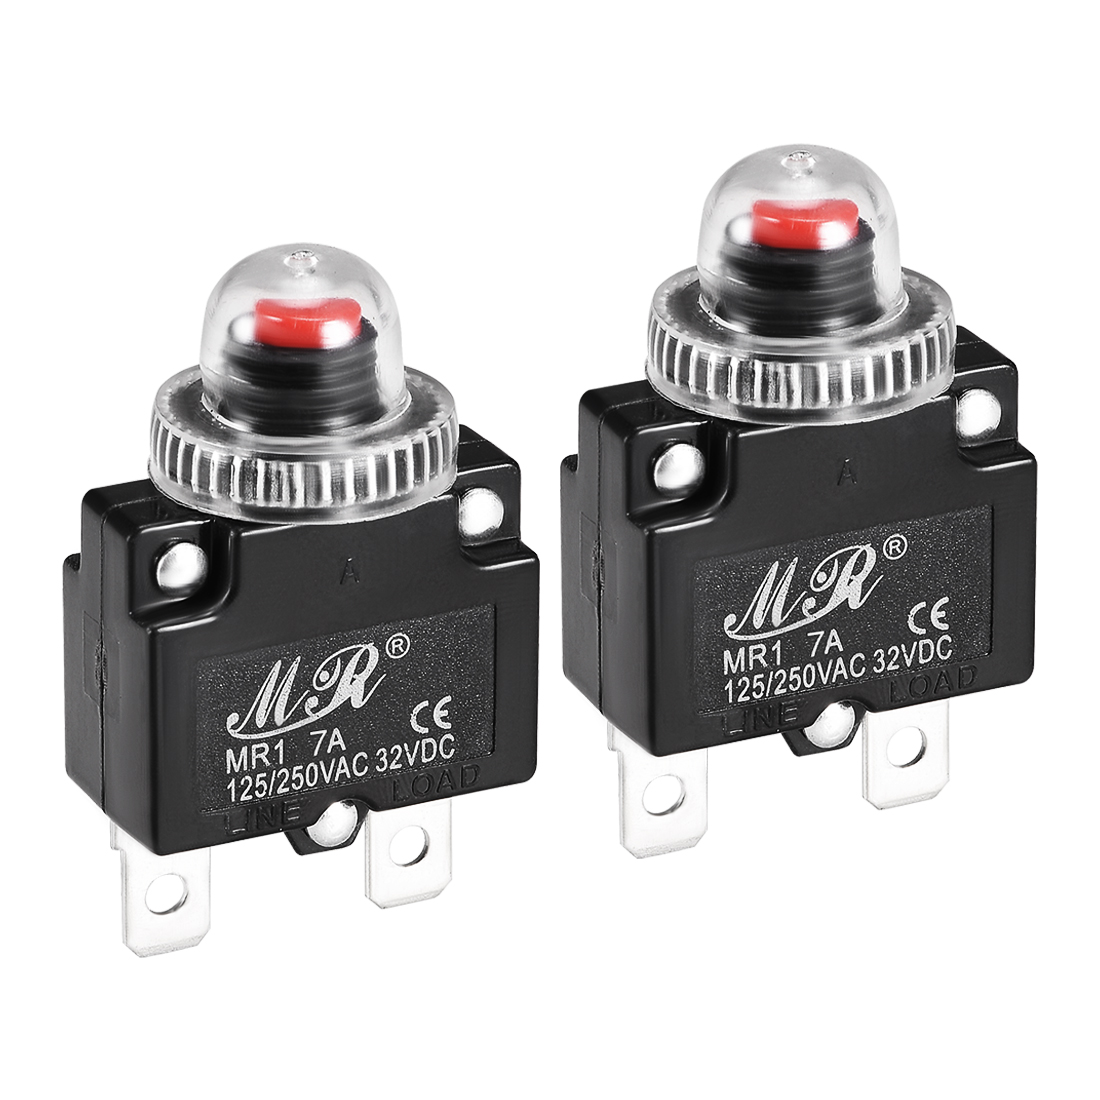 2 Pcs 7A 125/250V Push Button Reset Overload Protector Thermal Circuit Breaker